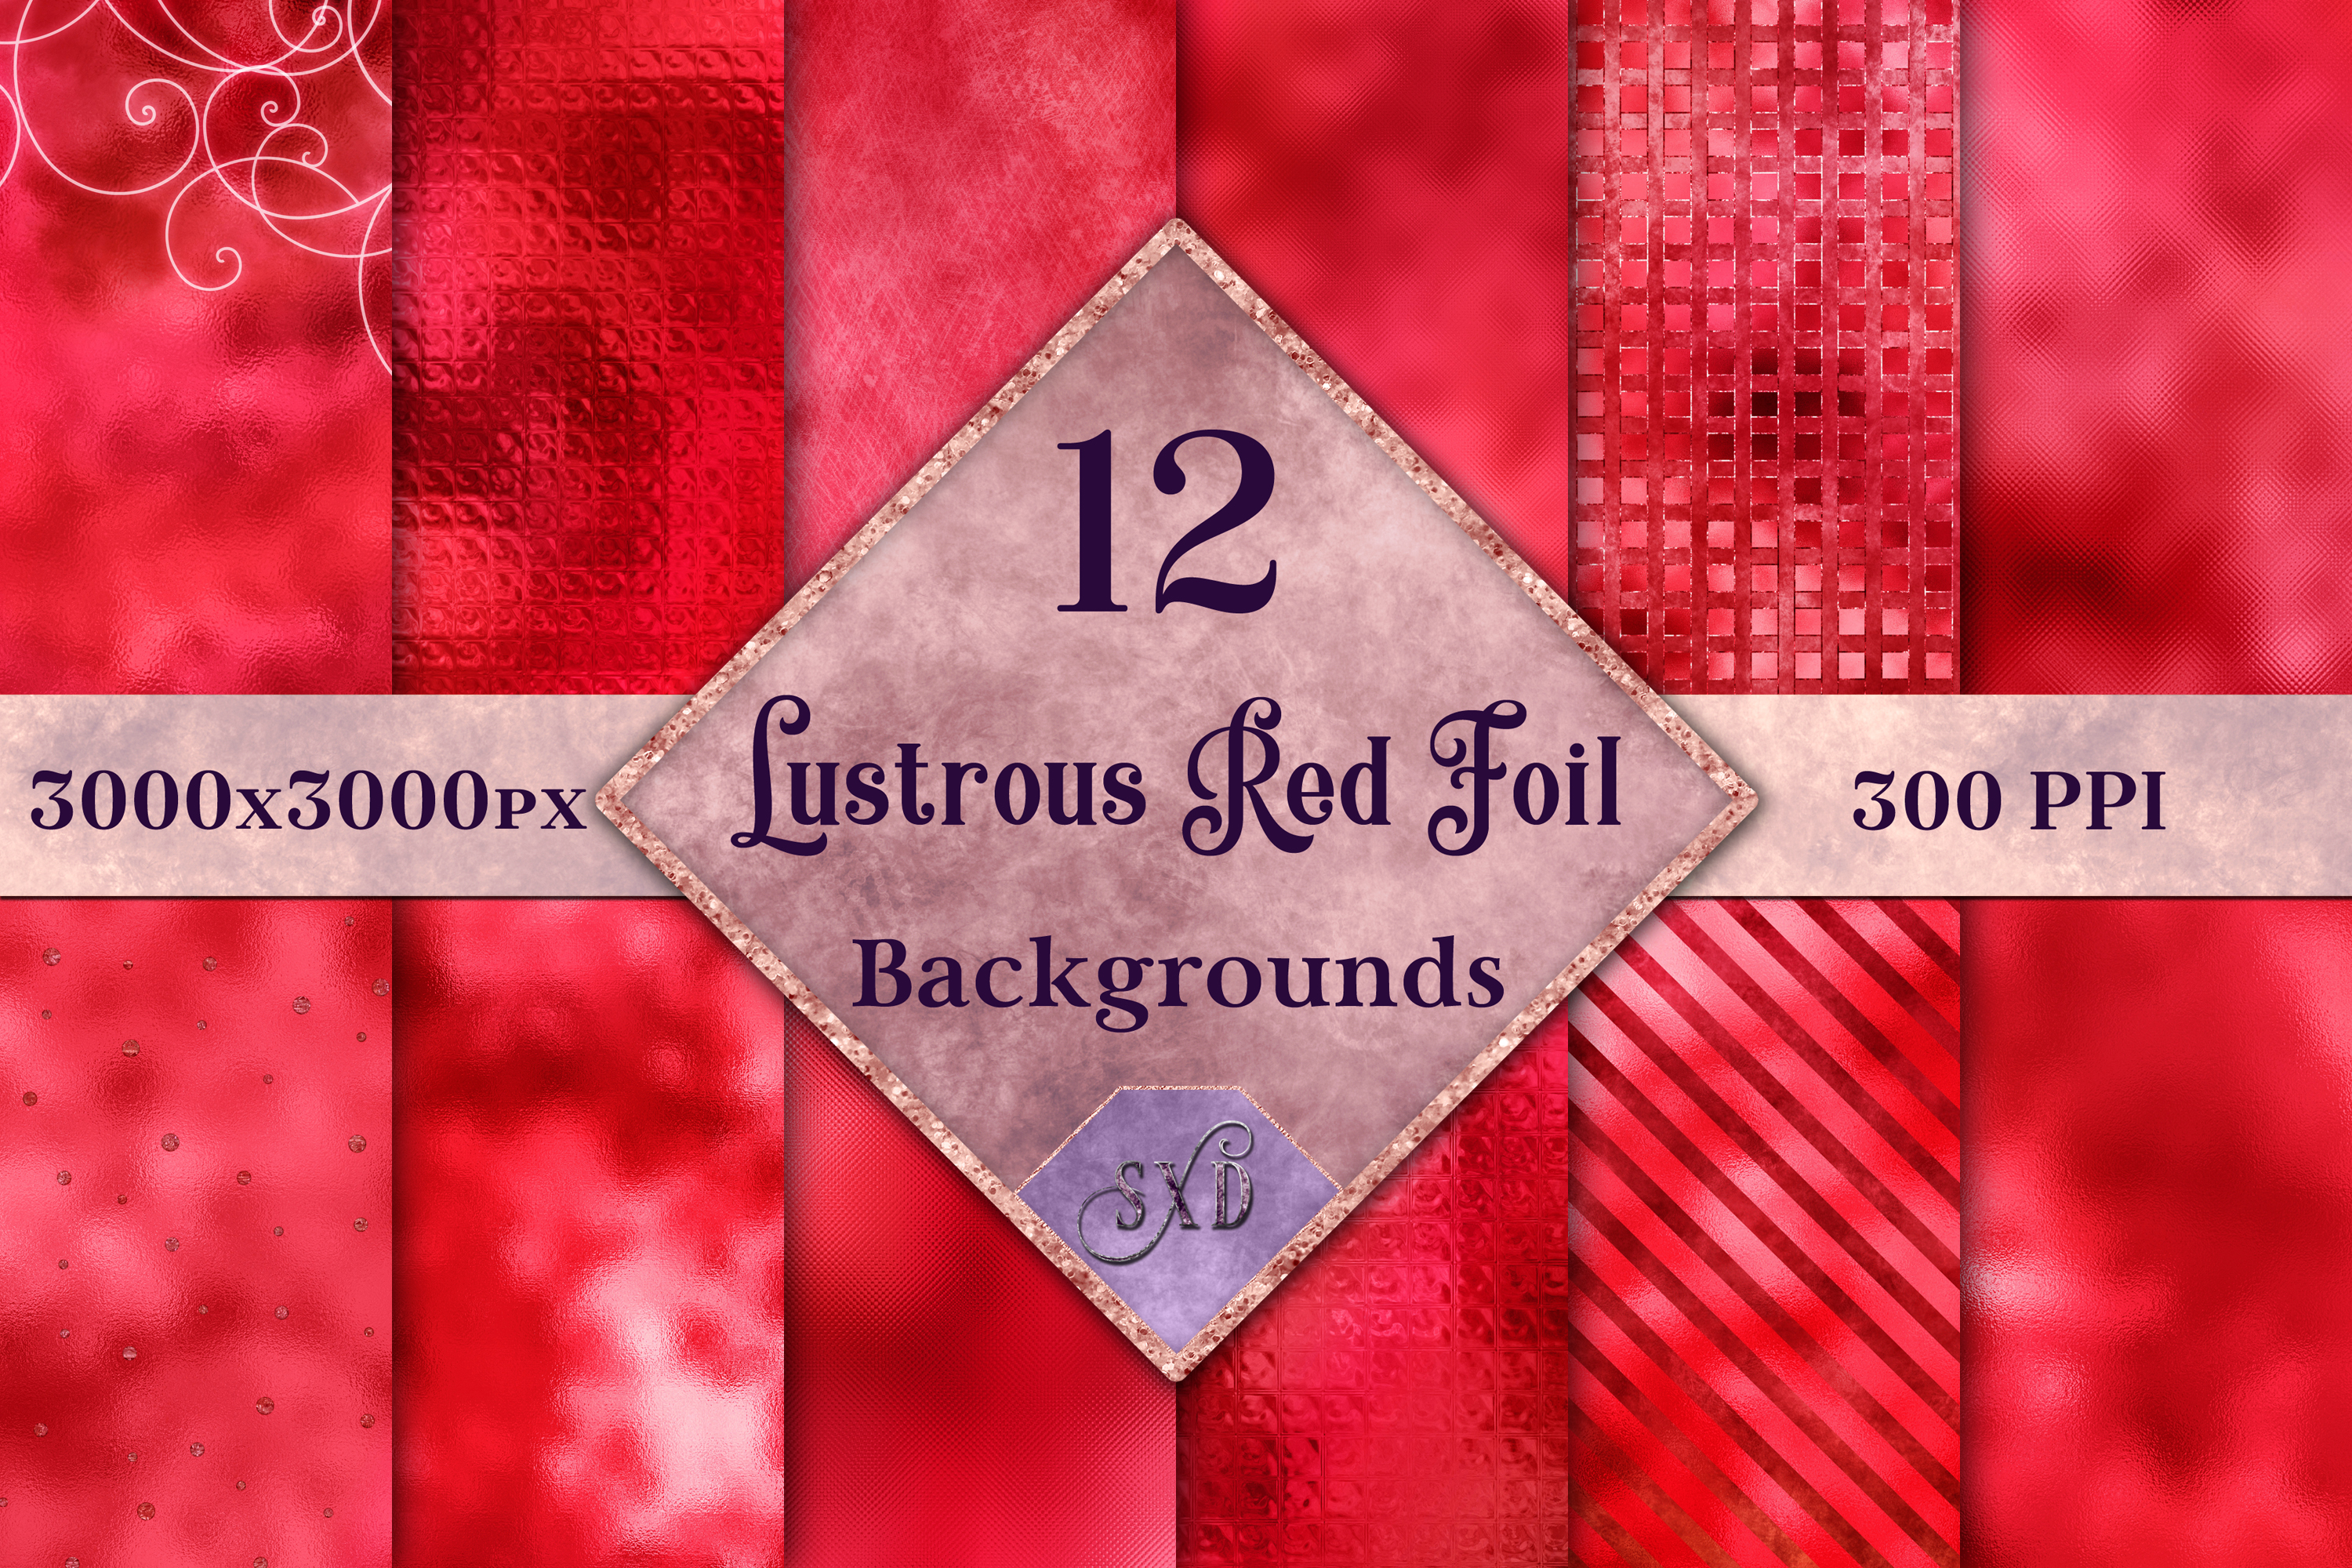 Lustrous Red Foil Backgrounds - 12 Image Textures Set example image 1